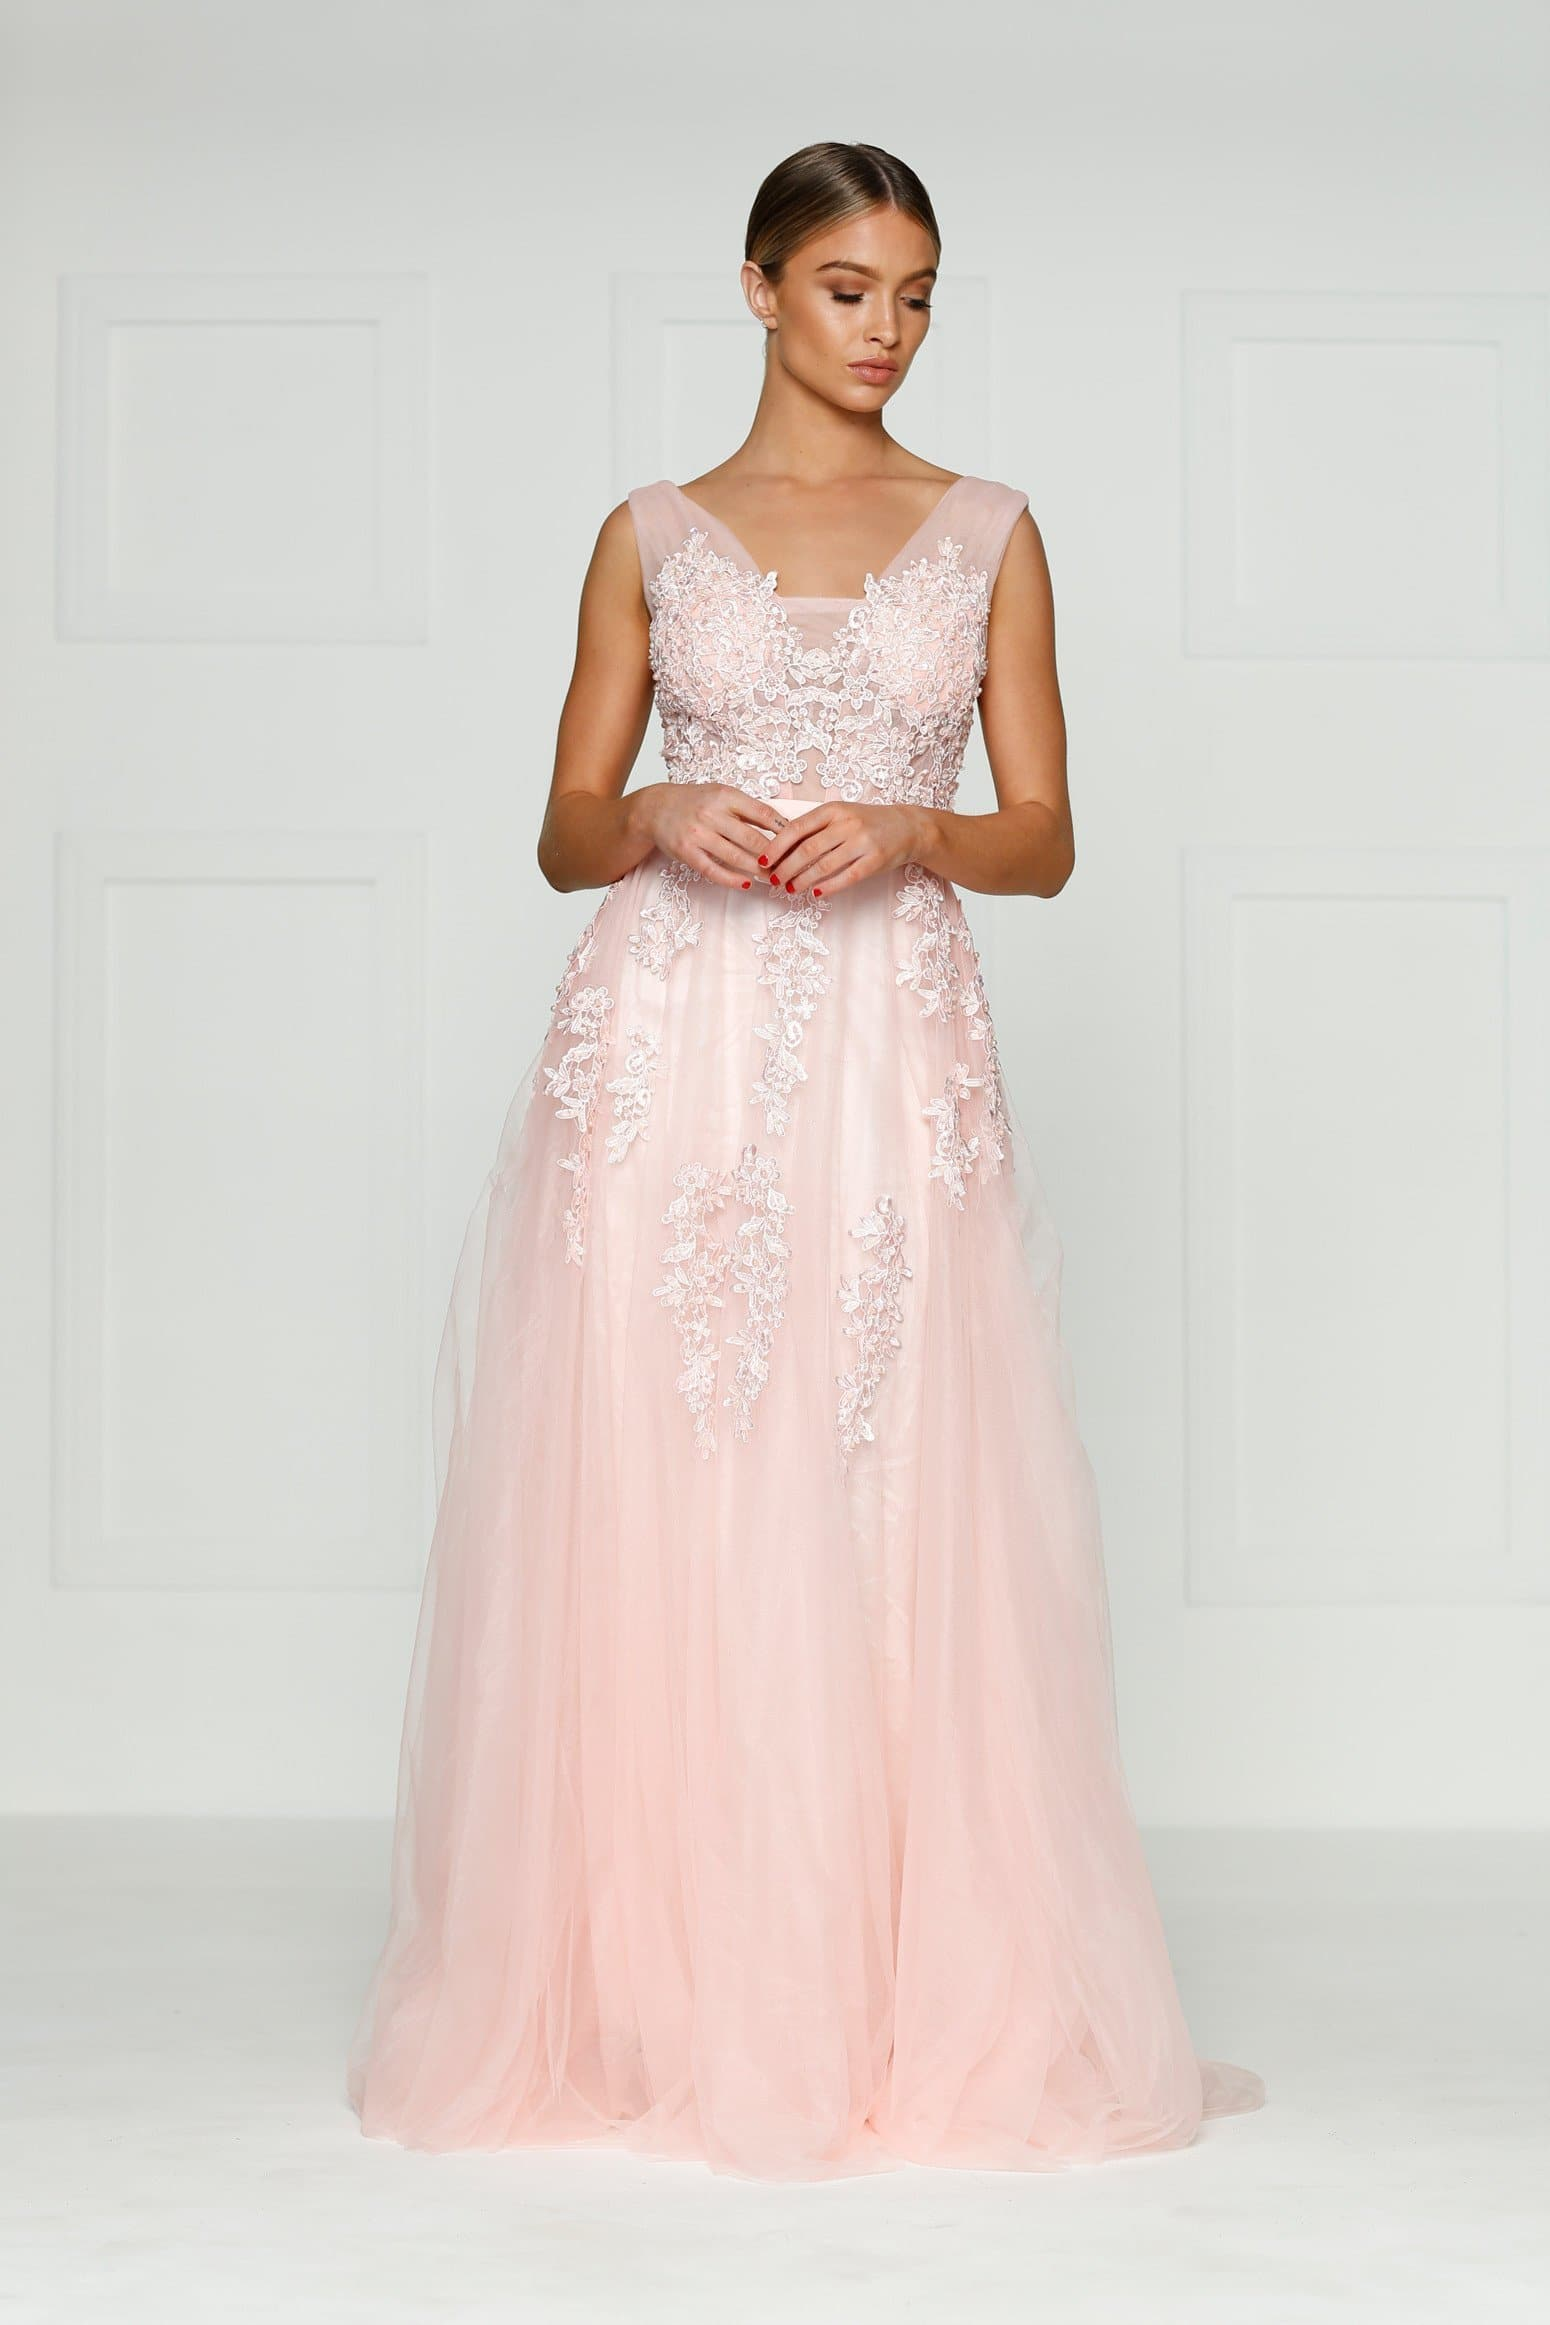 A&N Louis- Baby Pink Princess Tulle Gown with Low Back and Lace ...